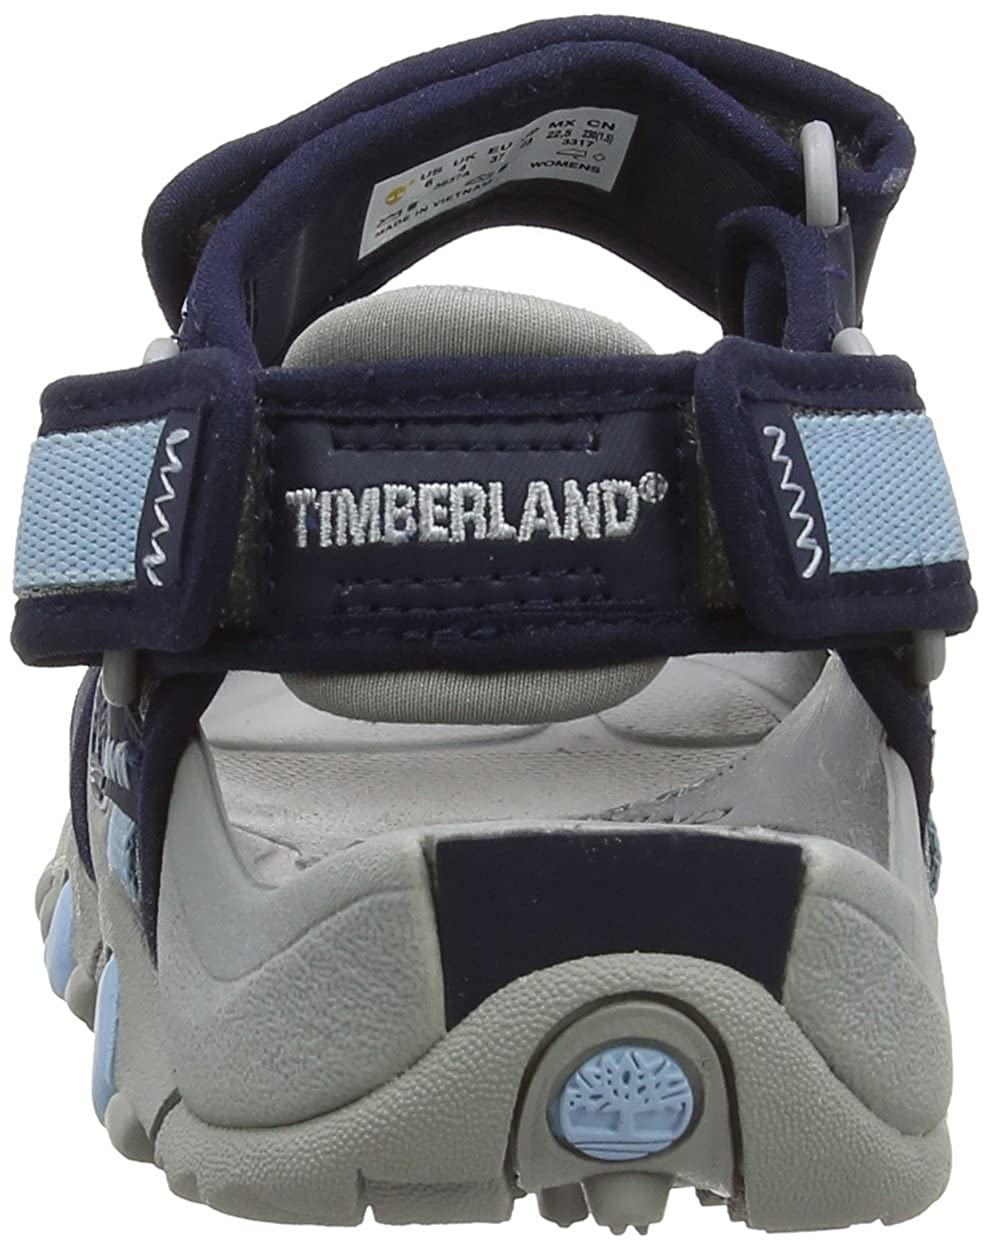 1f0d9f49 Timberland Rg Trail FTP Nekkol Convertible, Women Multisport Outdoor Shoes:  Amazon.co.uk: Shoes & Bags